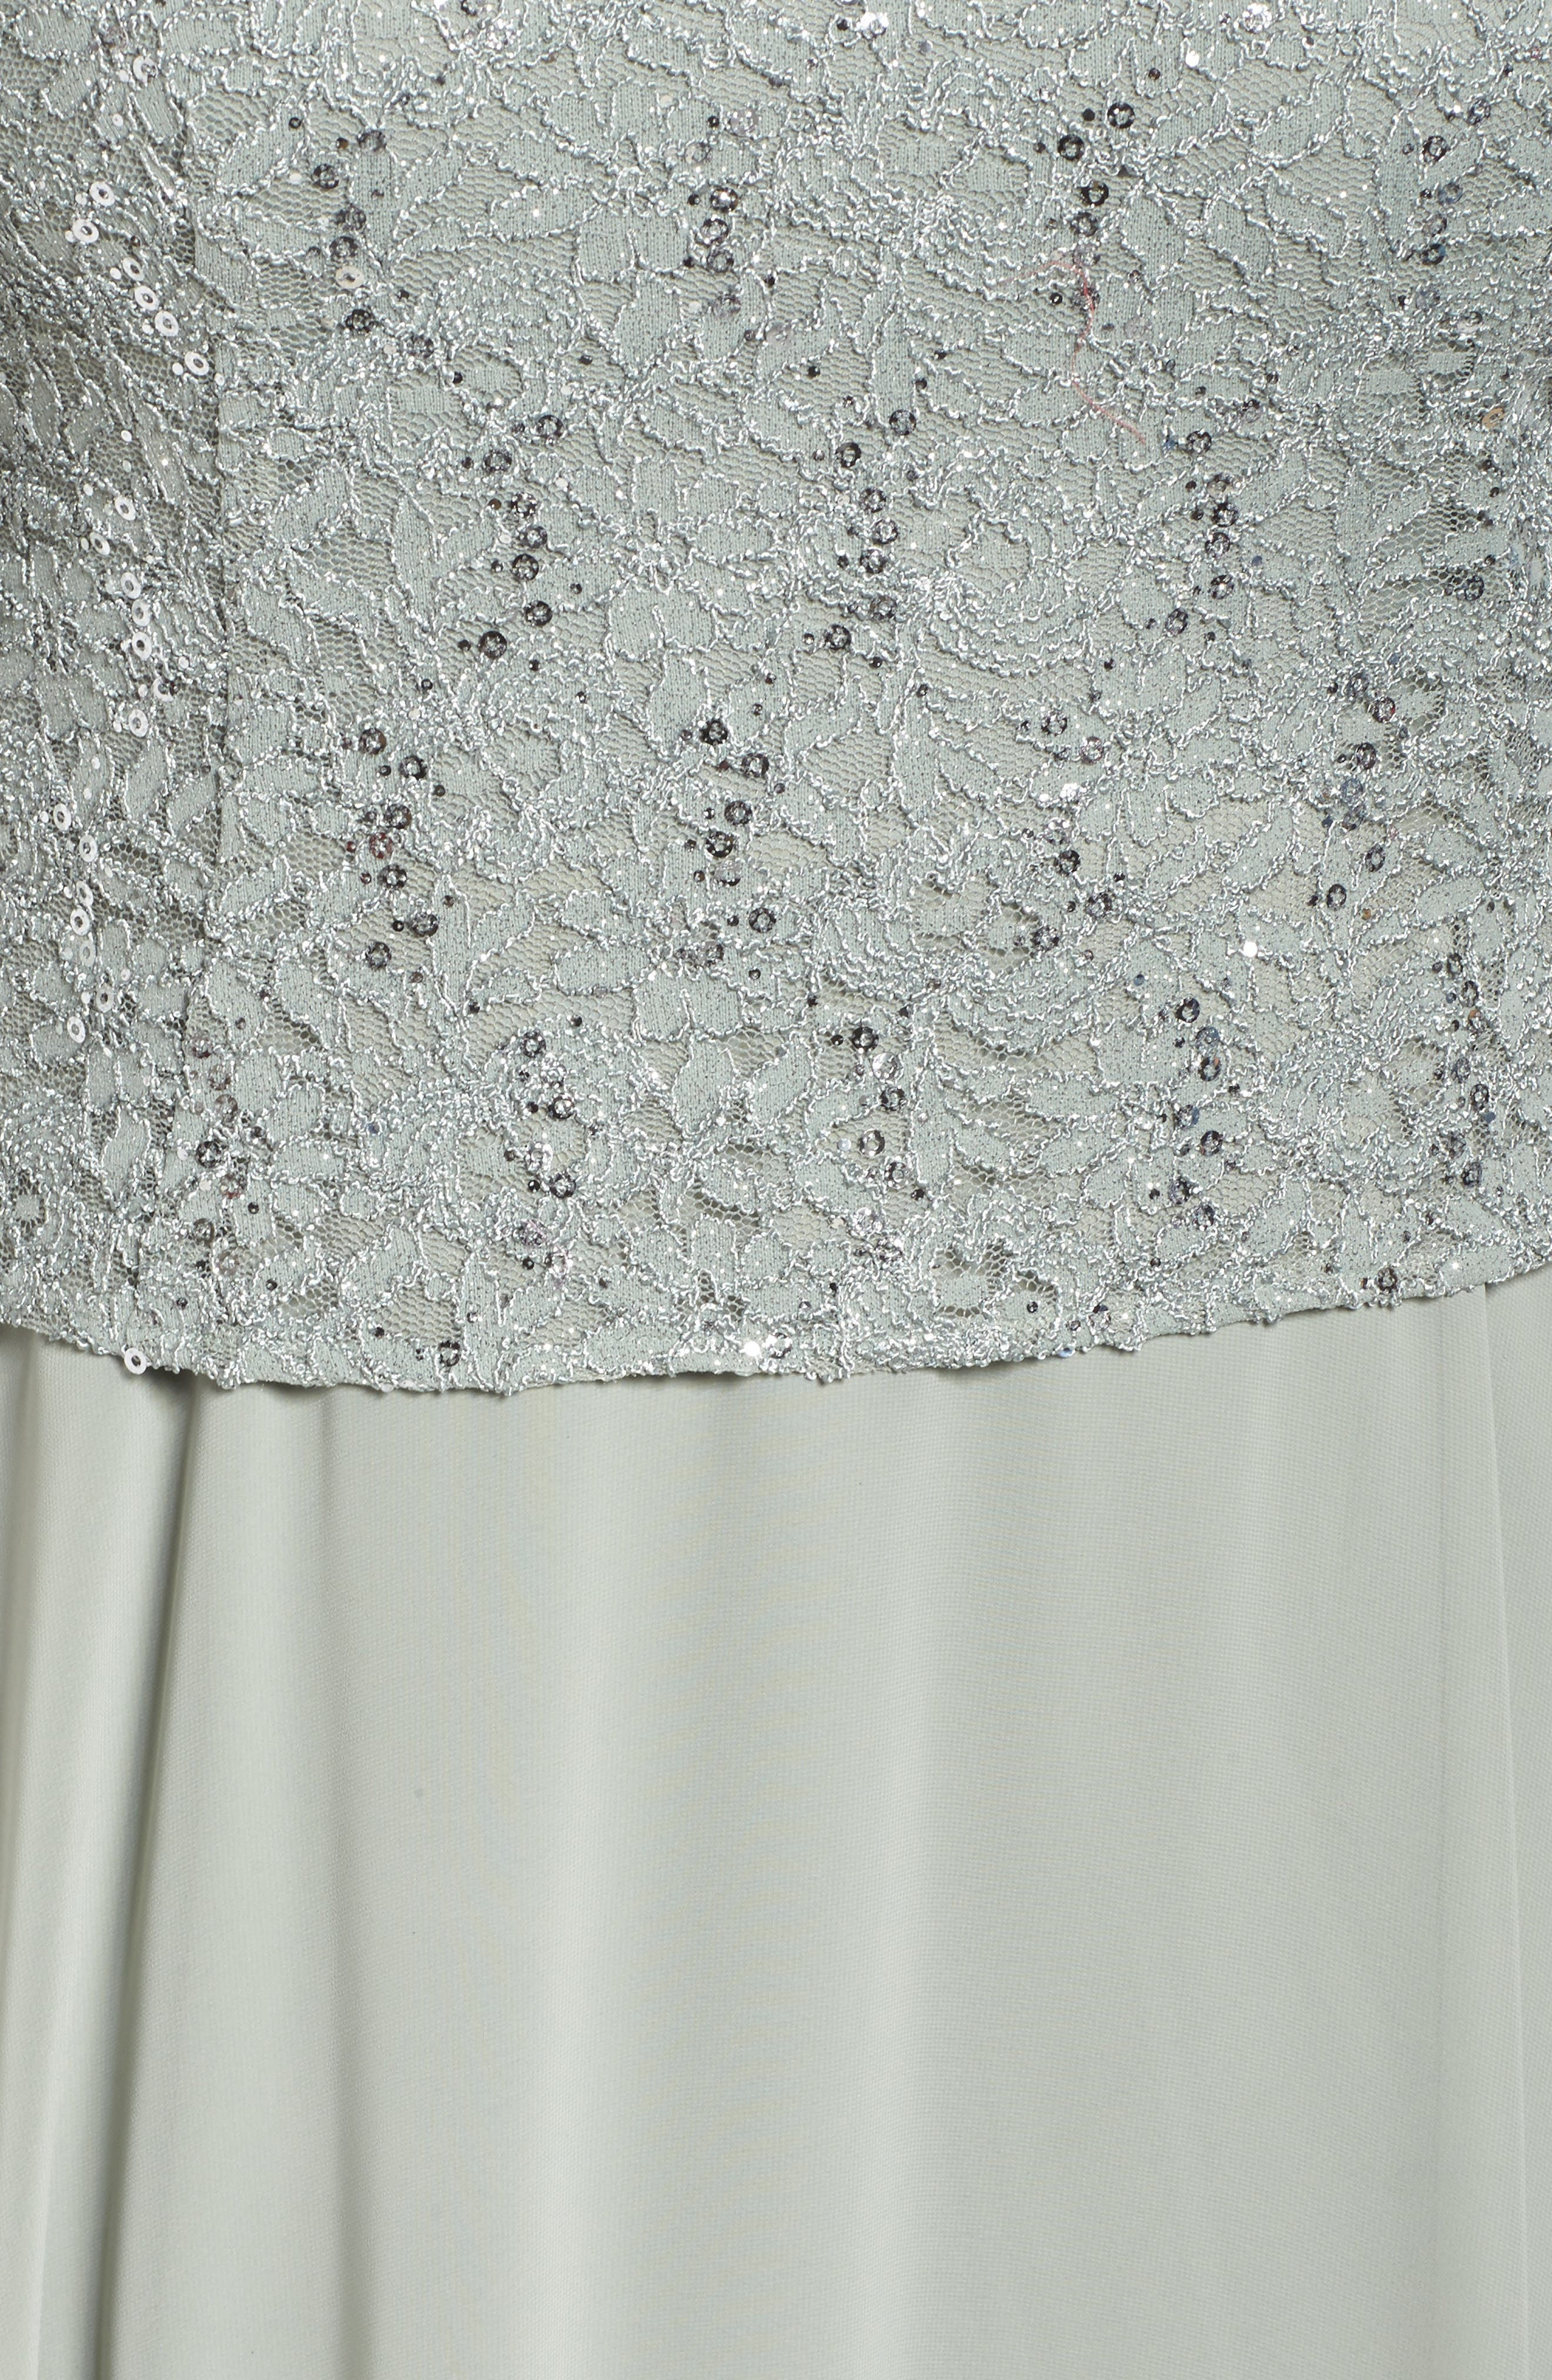 Sequin Lace & Satin Dress with Jacket,                             Alternate thumbnail 5, color,                             357